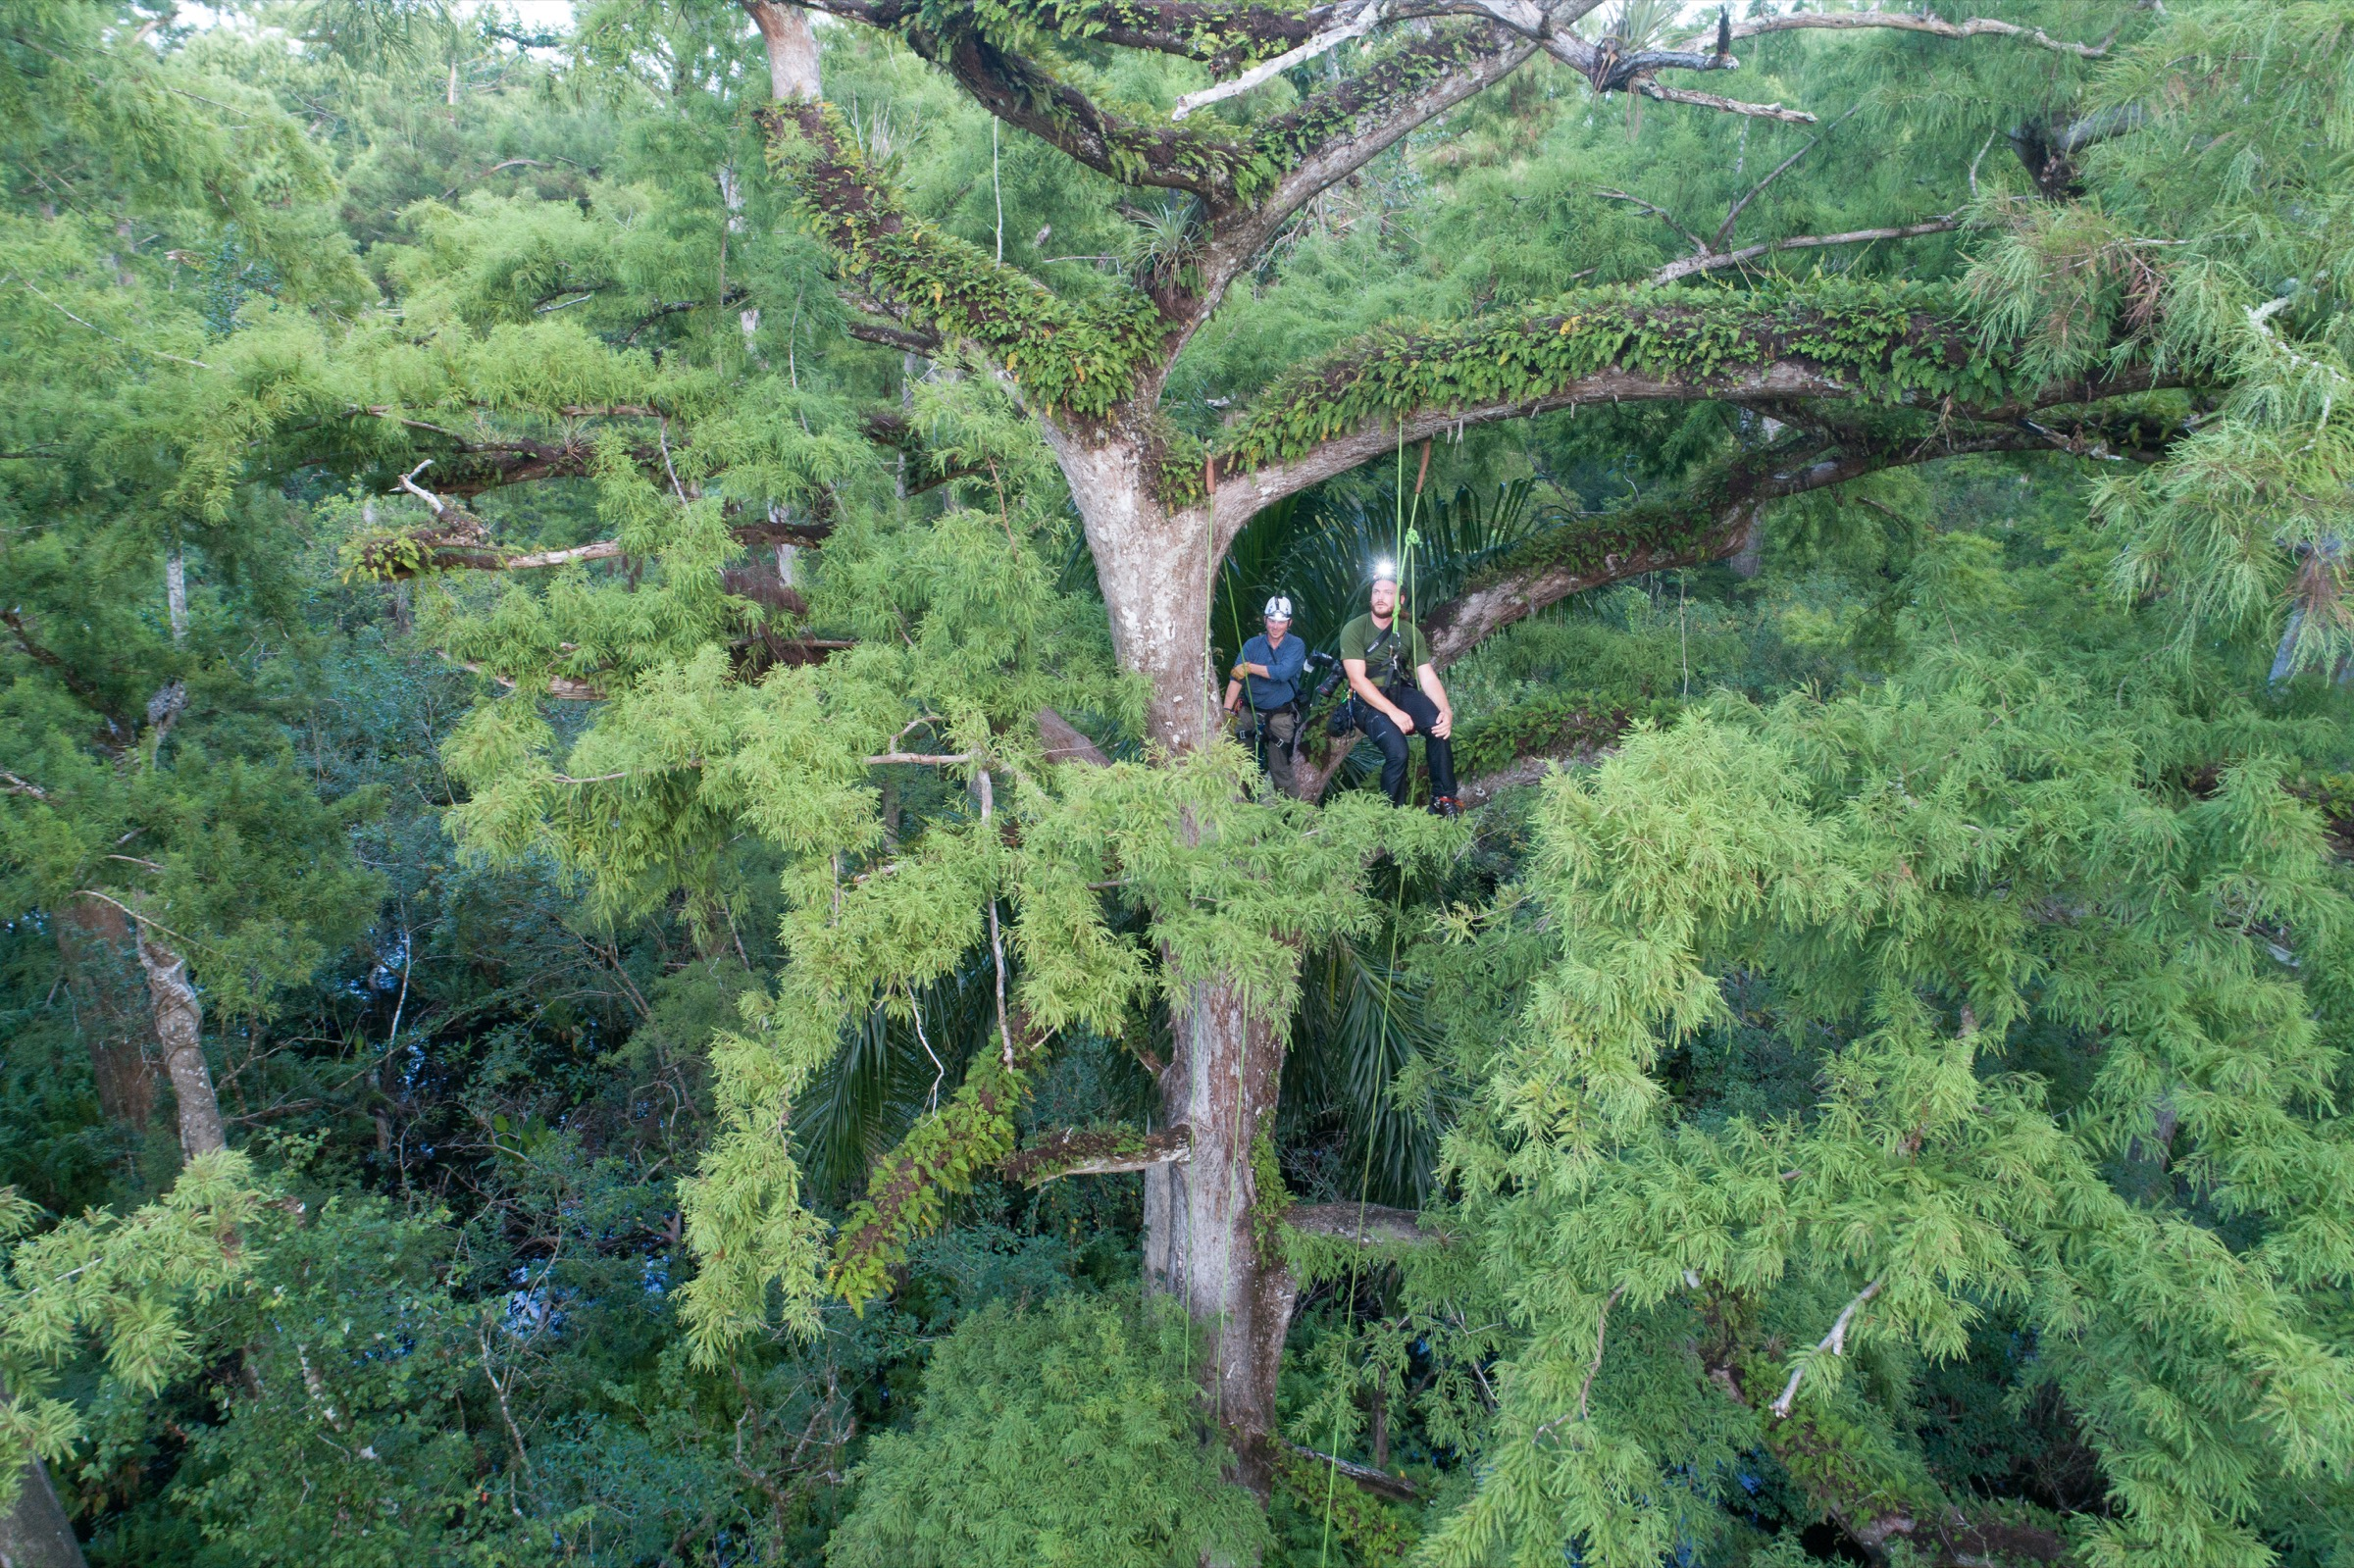 Photographer Mac Stone (in blue) and ecologist Peter Houlihan explore the canopy of an old-growth cypress tree at Audubon's Corkscrew Swamp Sanctuary near Naples, Florida. They captured the first-ever photo of a giant sphinx moth visiting a ghost orchid using a camera trap in a nearby cypress tree. Photograph by Carlton Ward Jr.